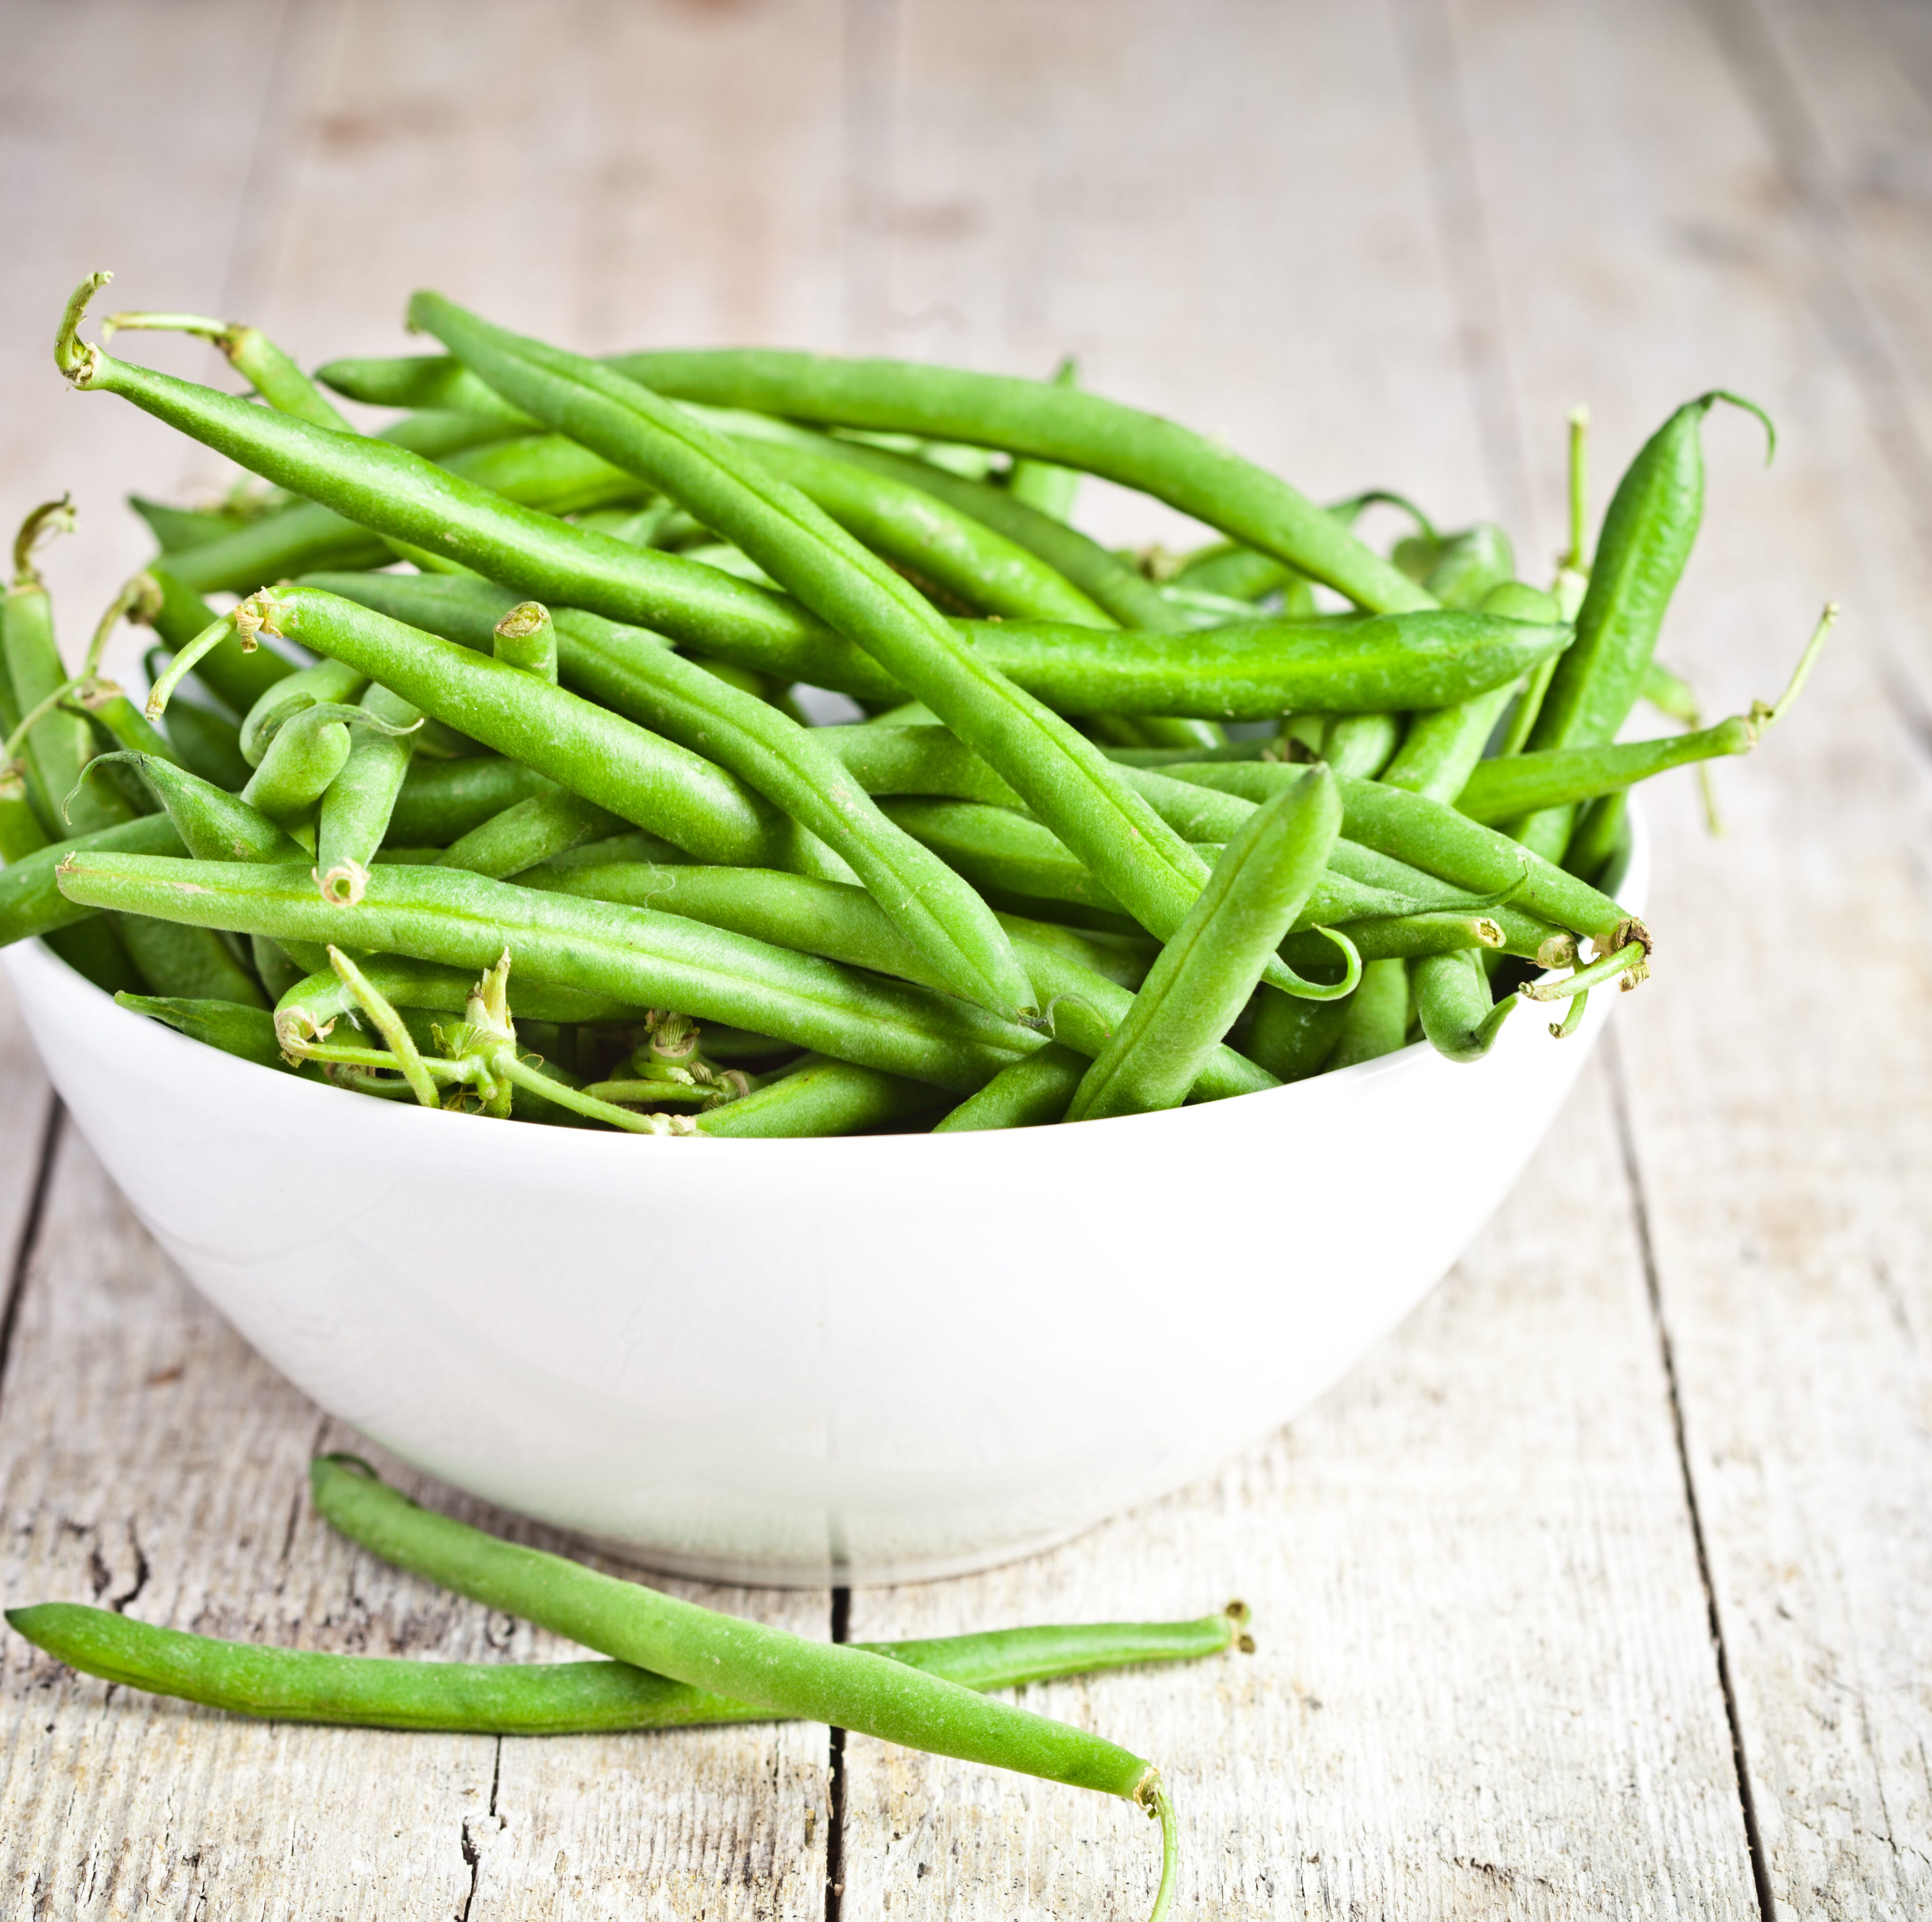 Pressure canning a MUST for green beans